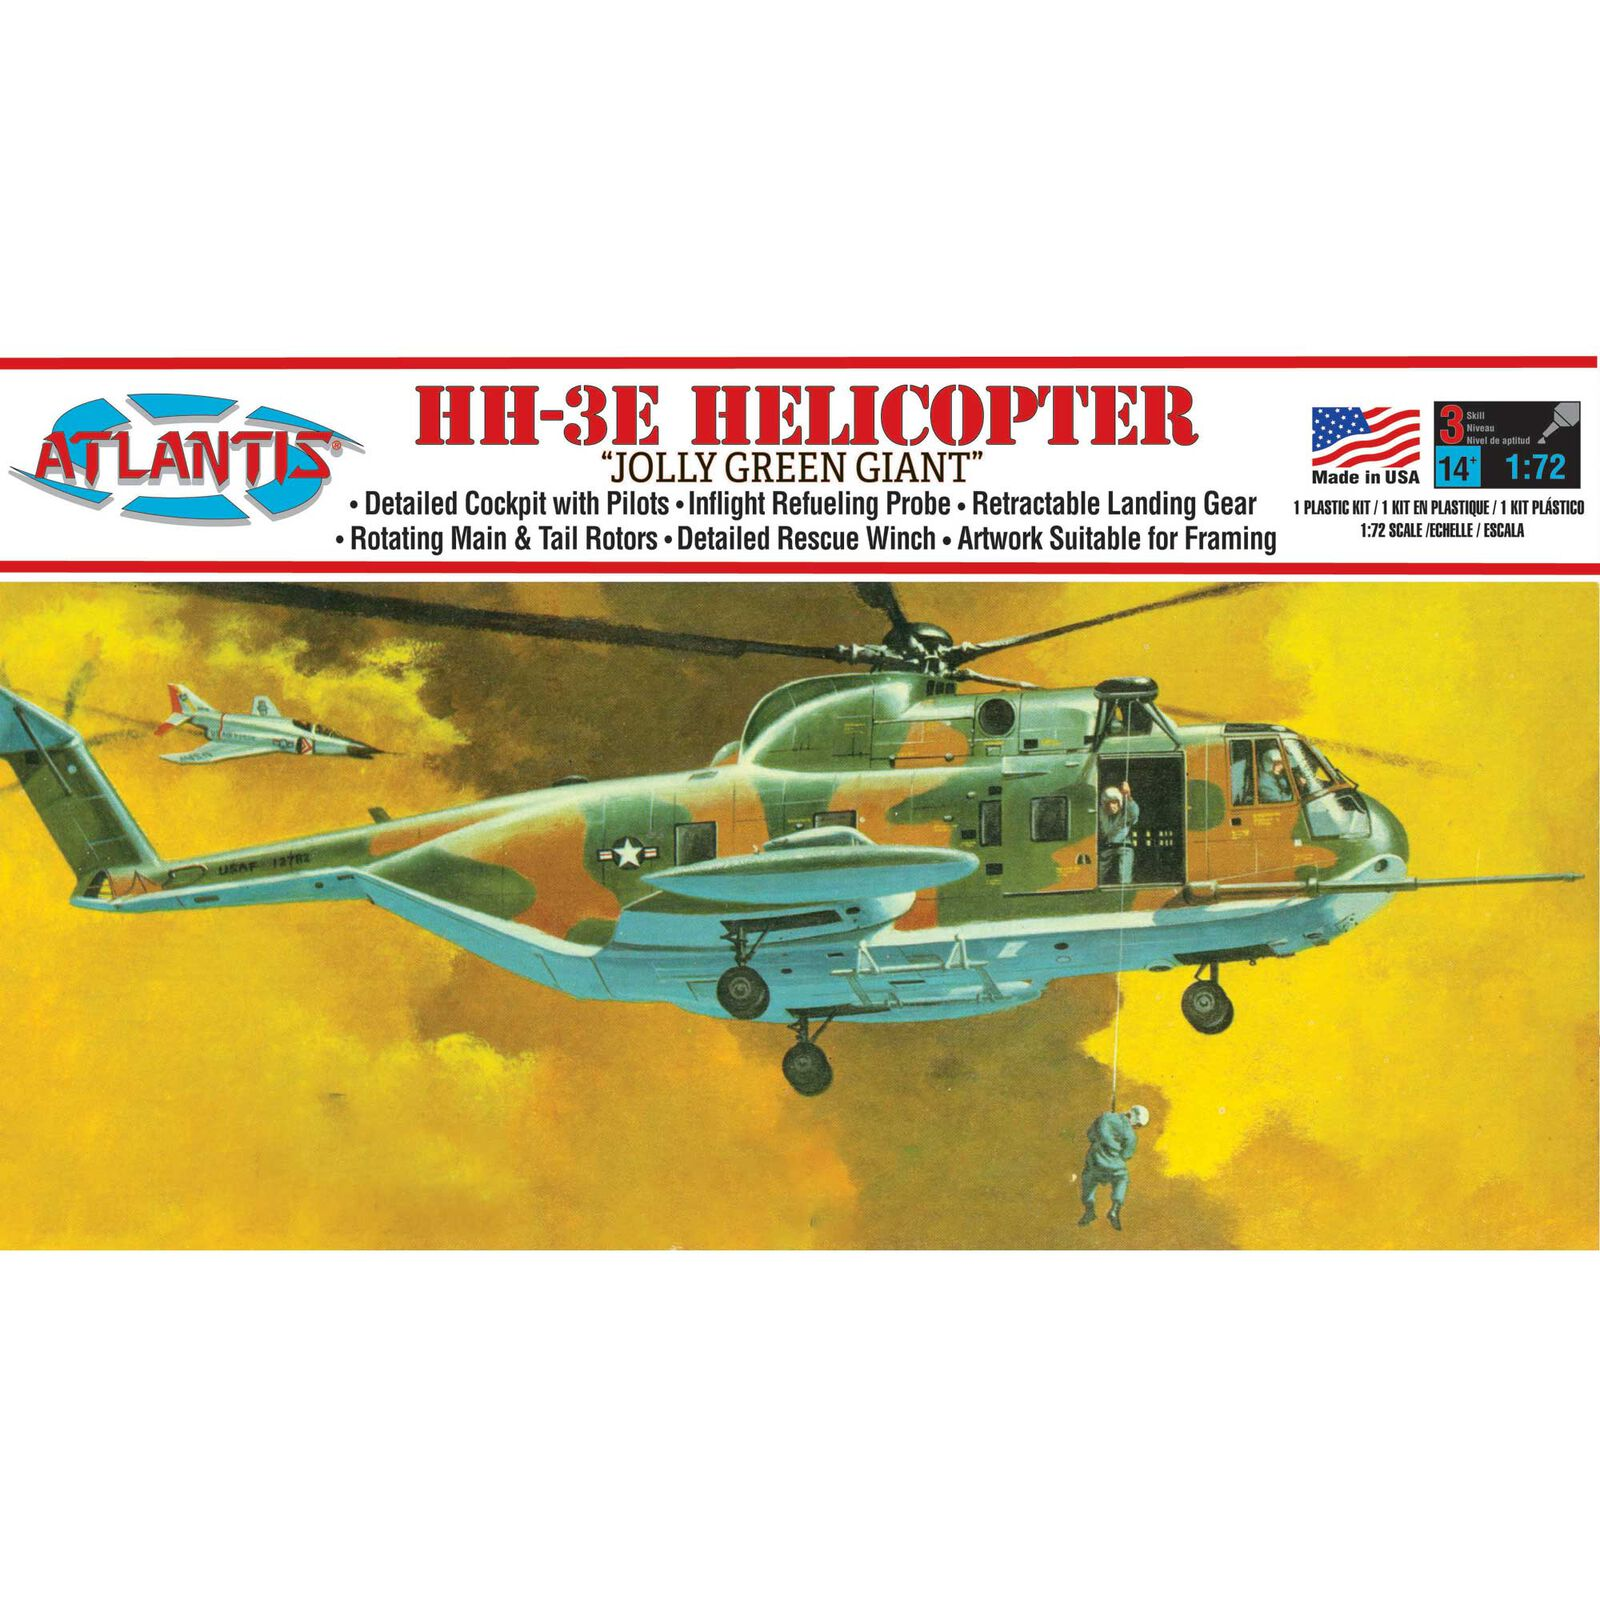 HH-3E Jolly Green Giant Helicopter 1/72 Model Kit